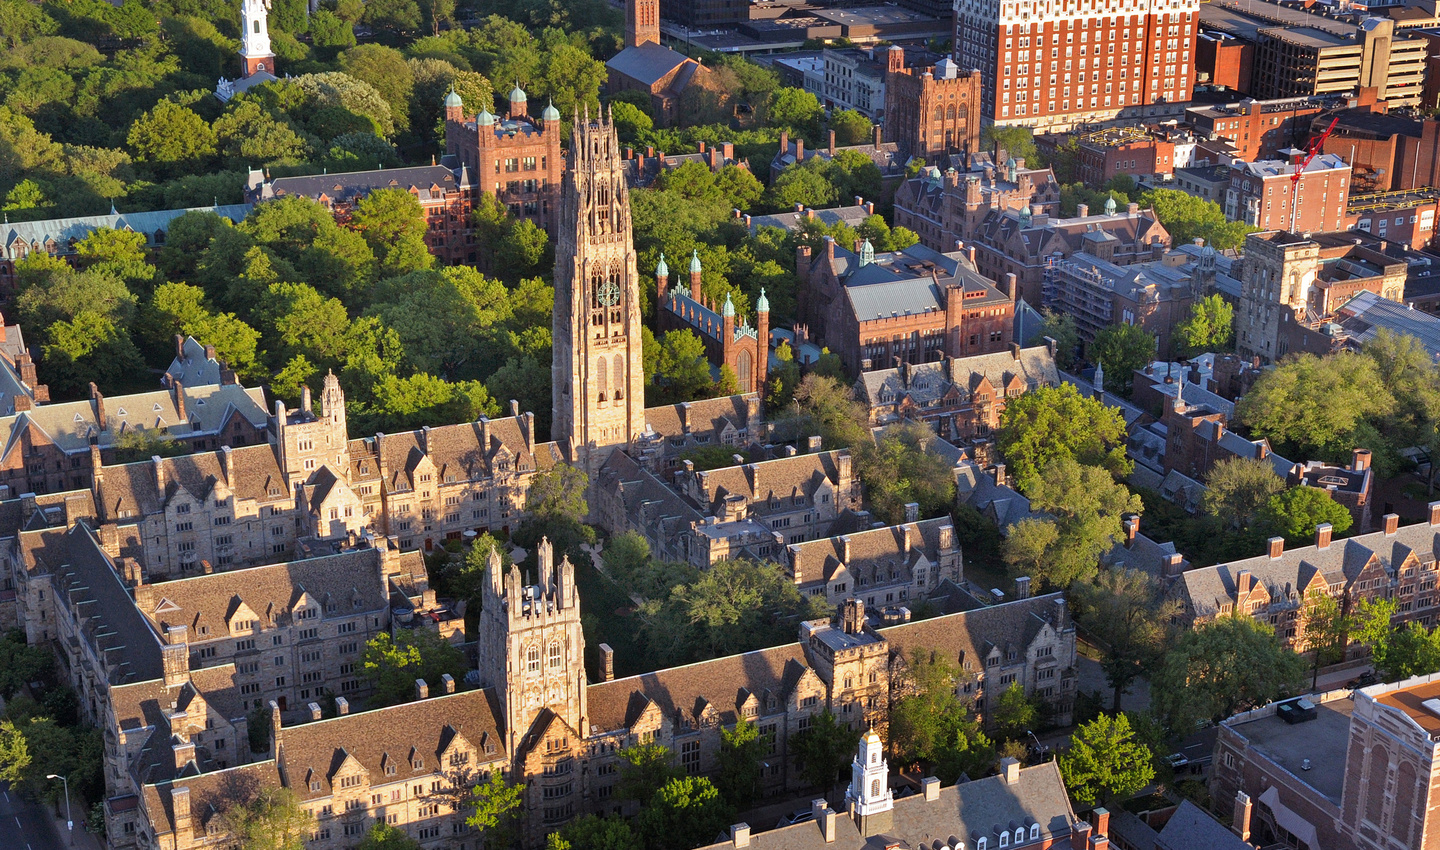 Aerial view of Yale's central campus